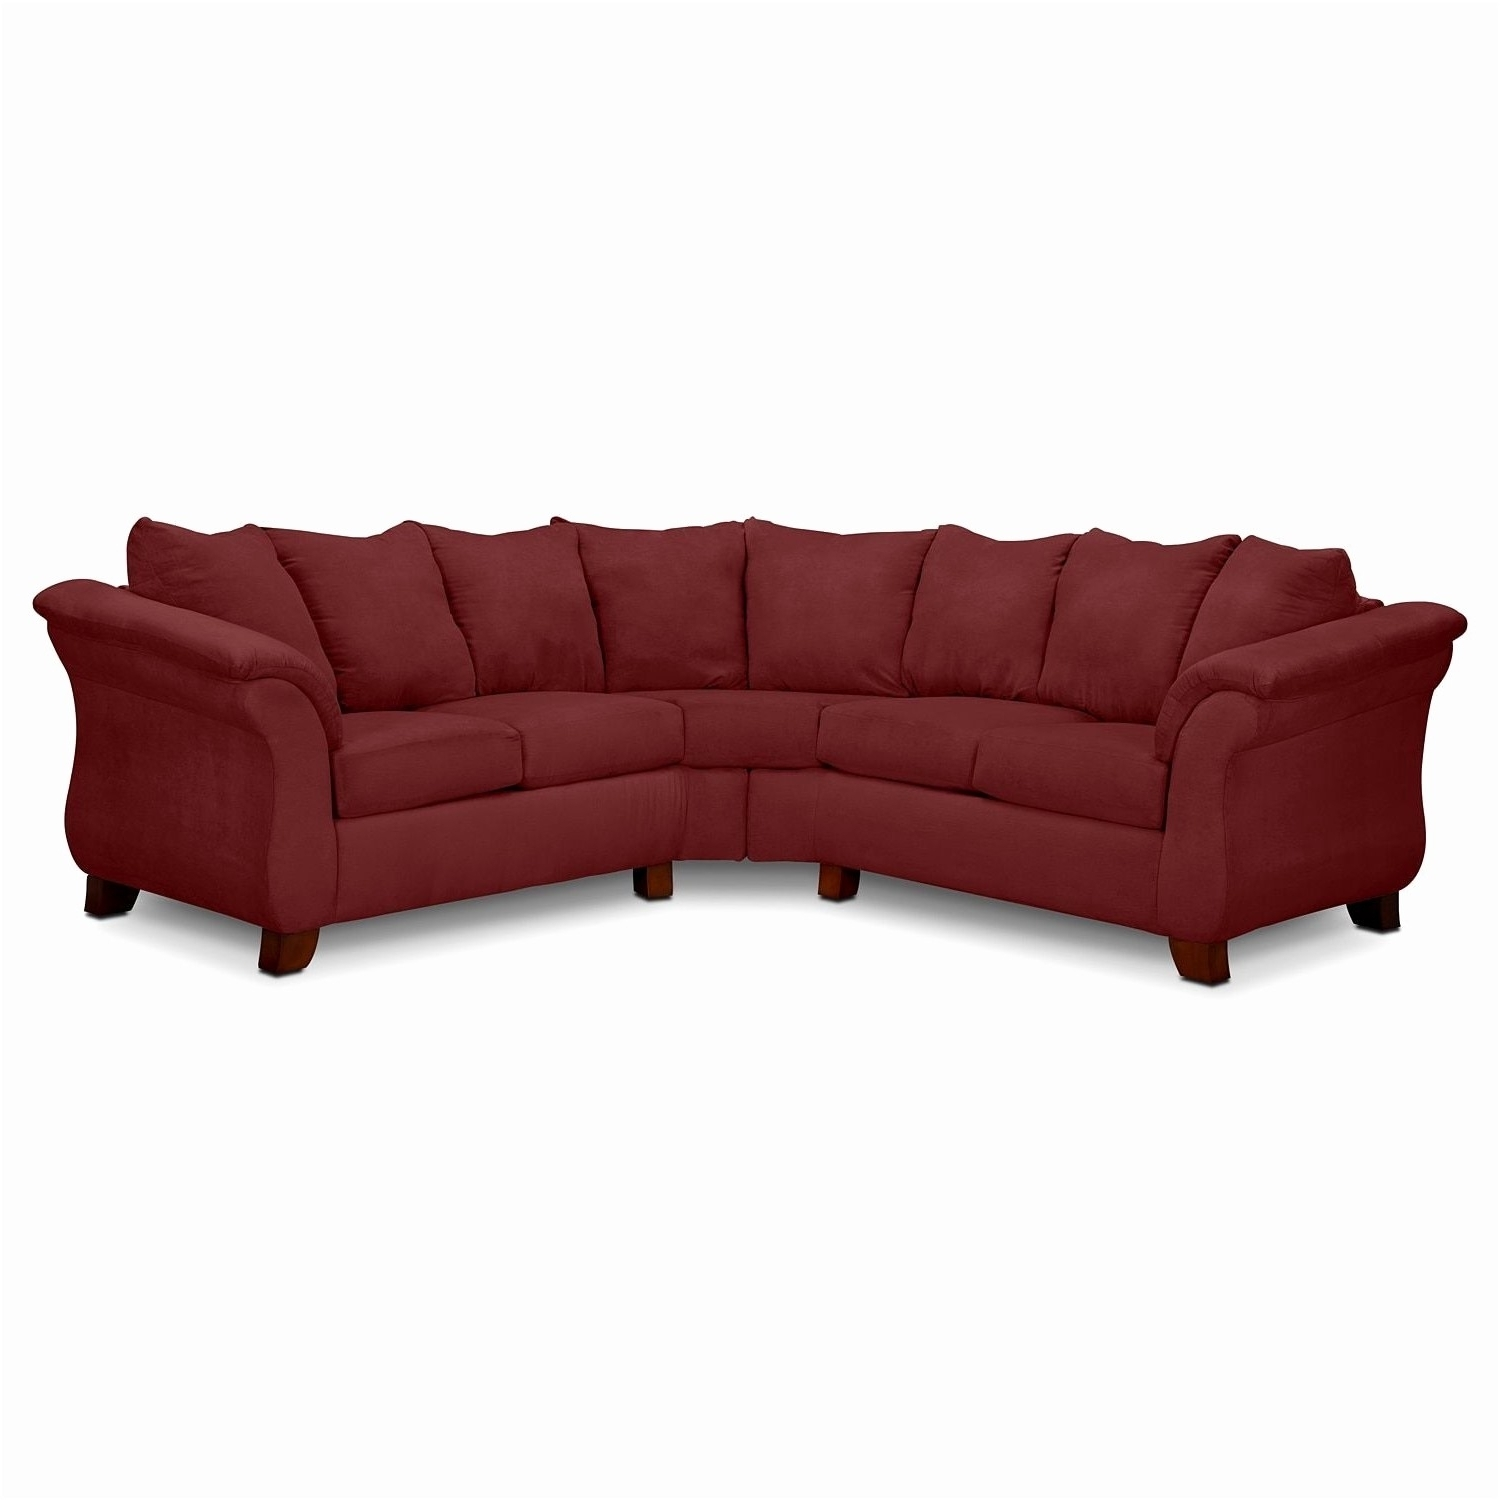 Most Recent Sectional Sofas Under 200 With Regard To Elegant Sectional Sofa Under 200 – Buildsimplehome (View 7 of 15)